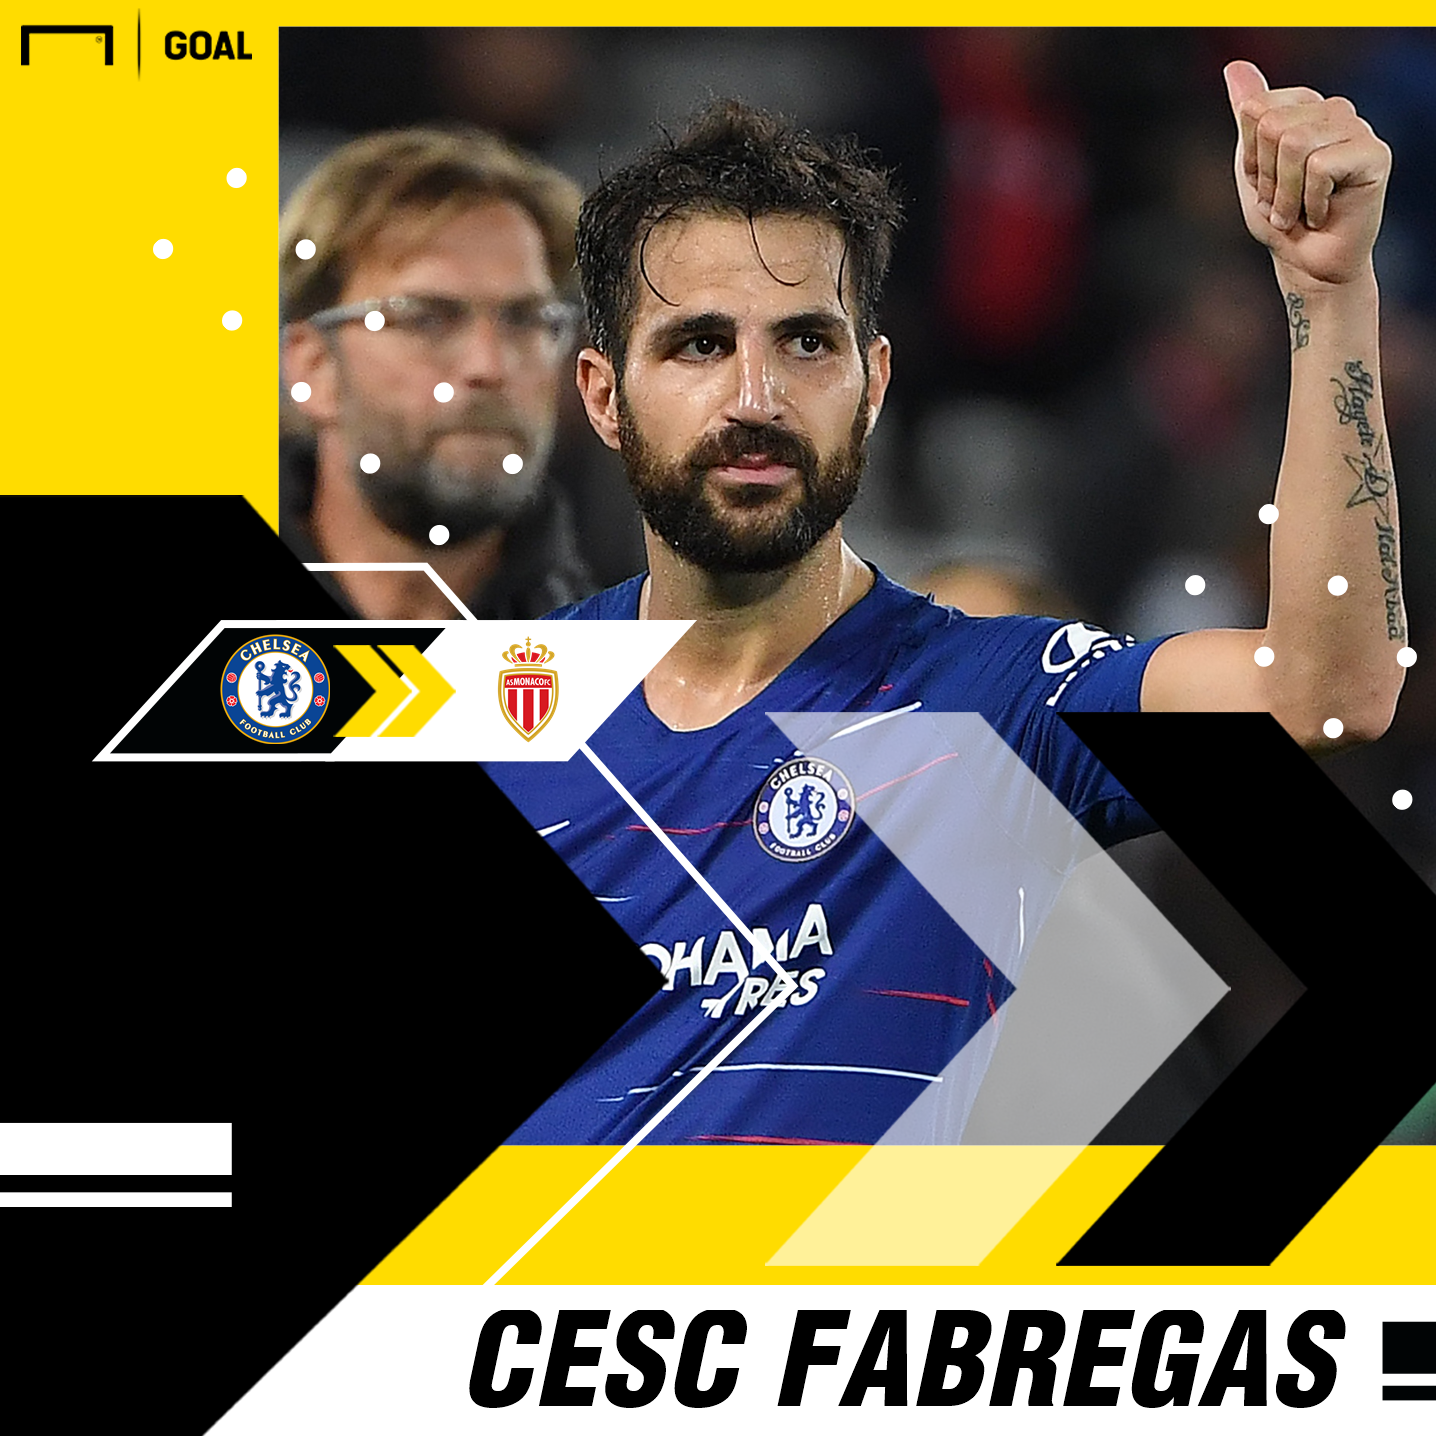 AS Monaco complete signing of Spanish midfielder Cesc Fabregas from Chelsea